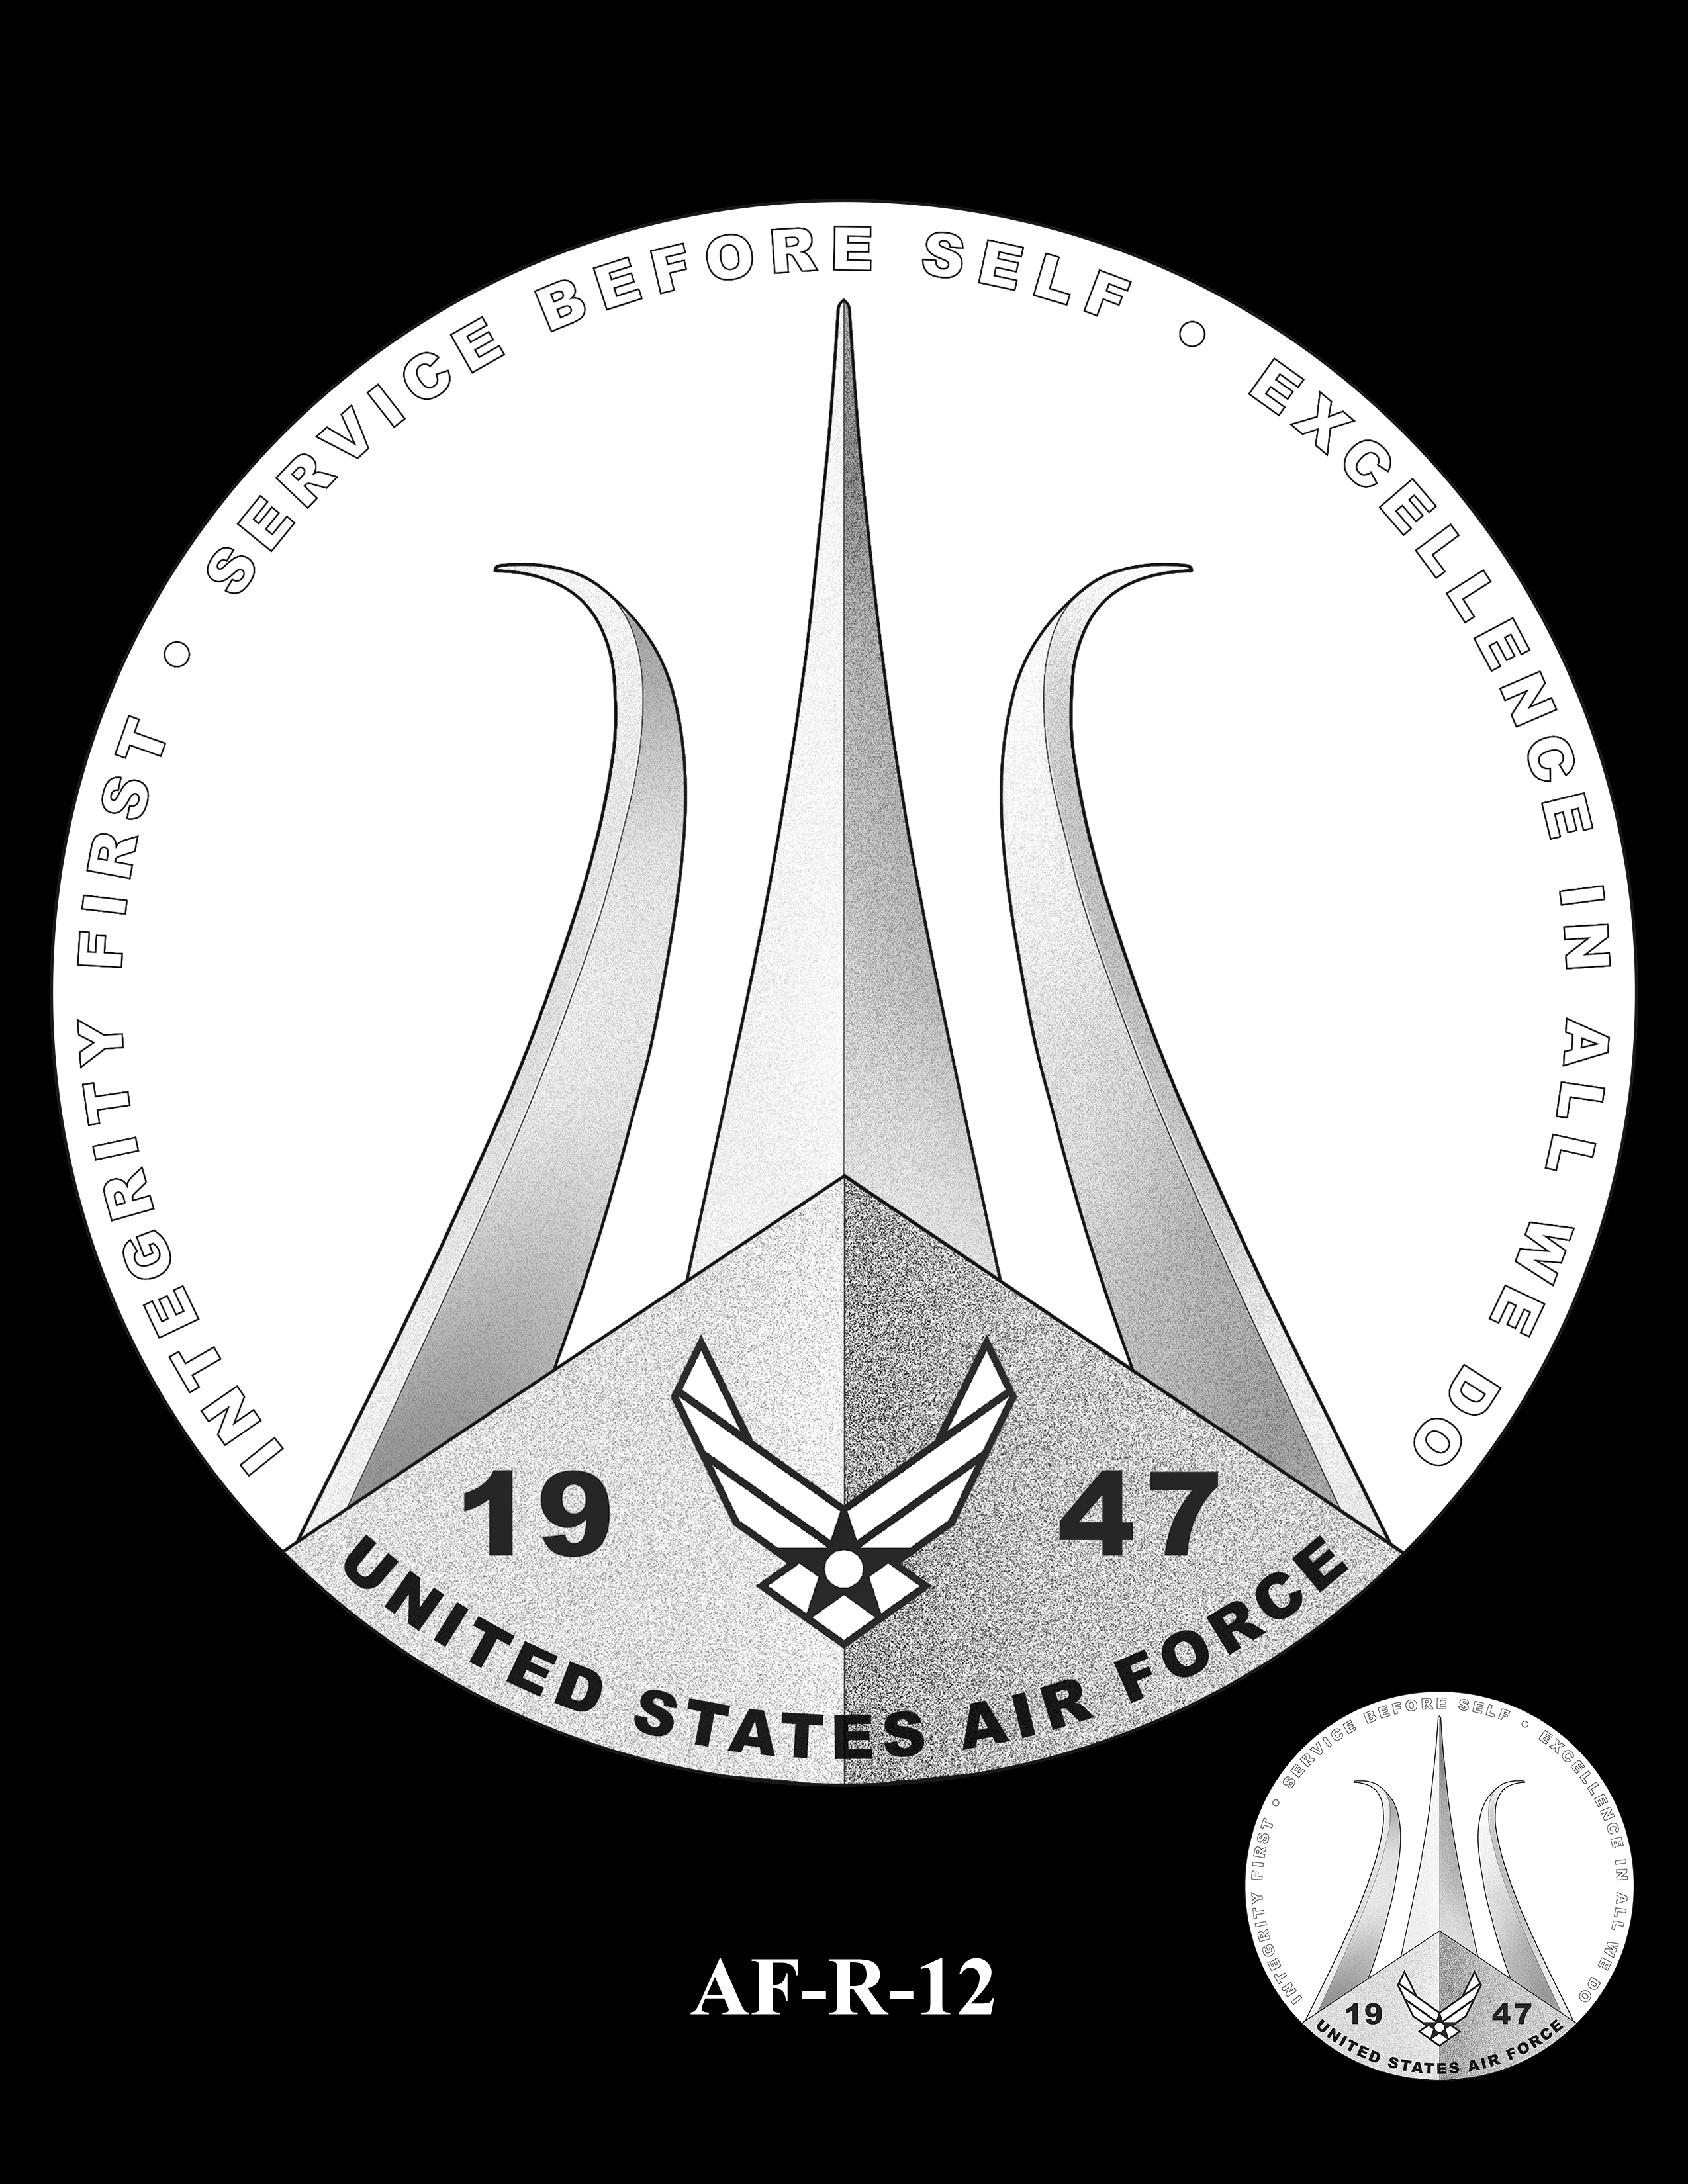 AF-R-12 -- Armed Forces Medal - Air Force